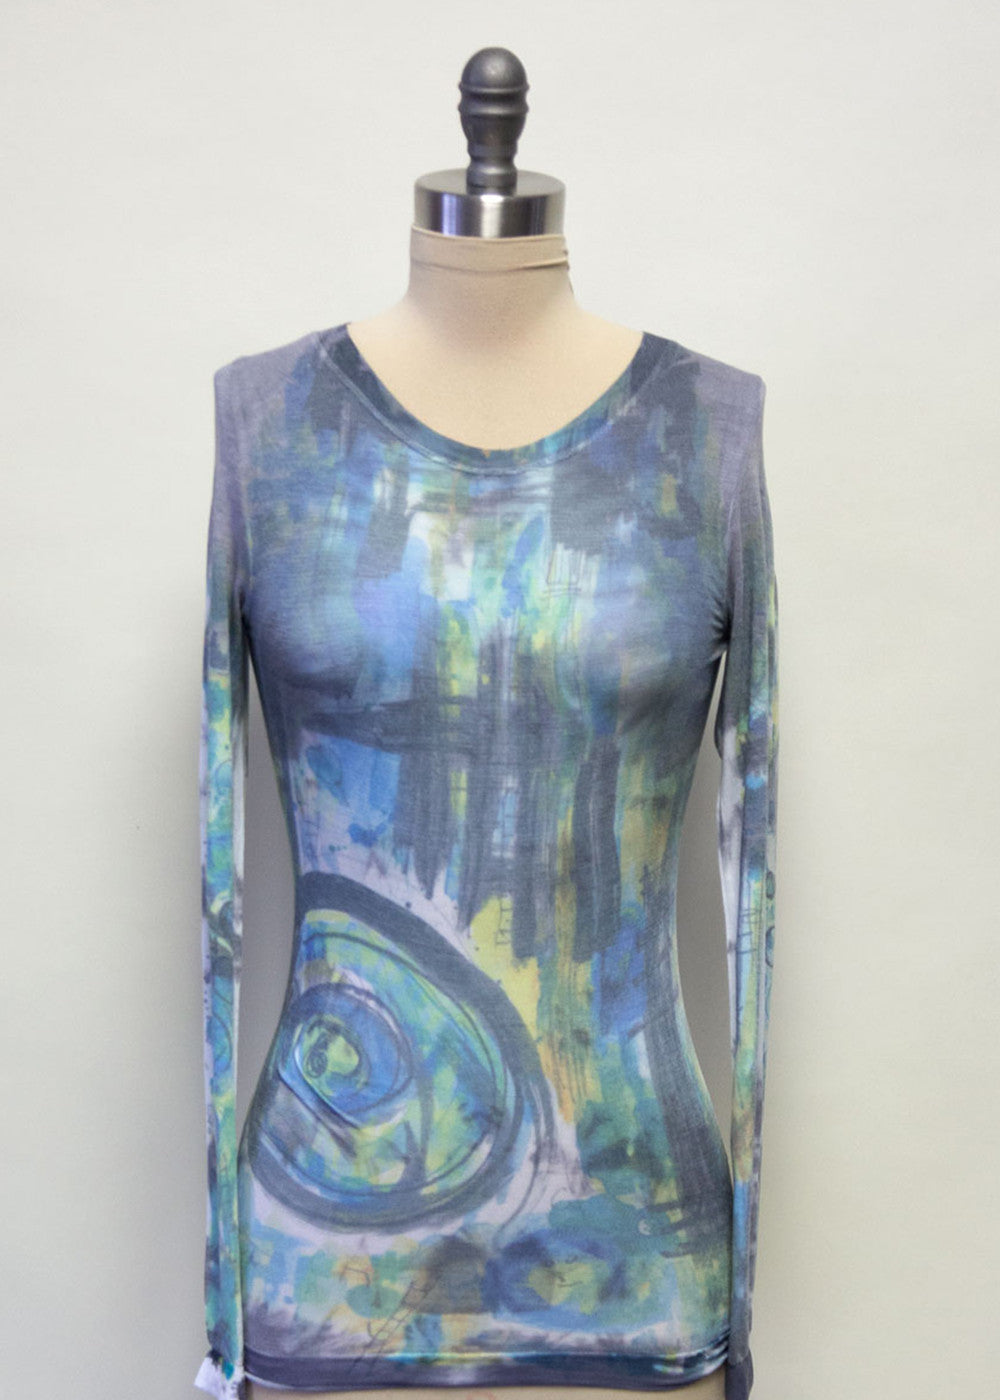 Maria Impressionist Long Sleeve Top